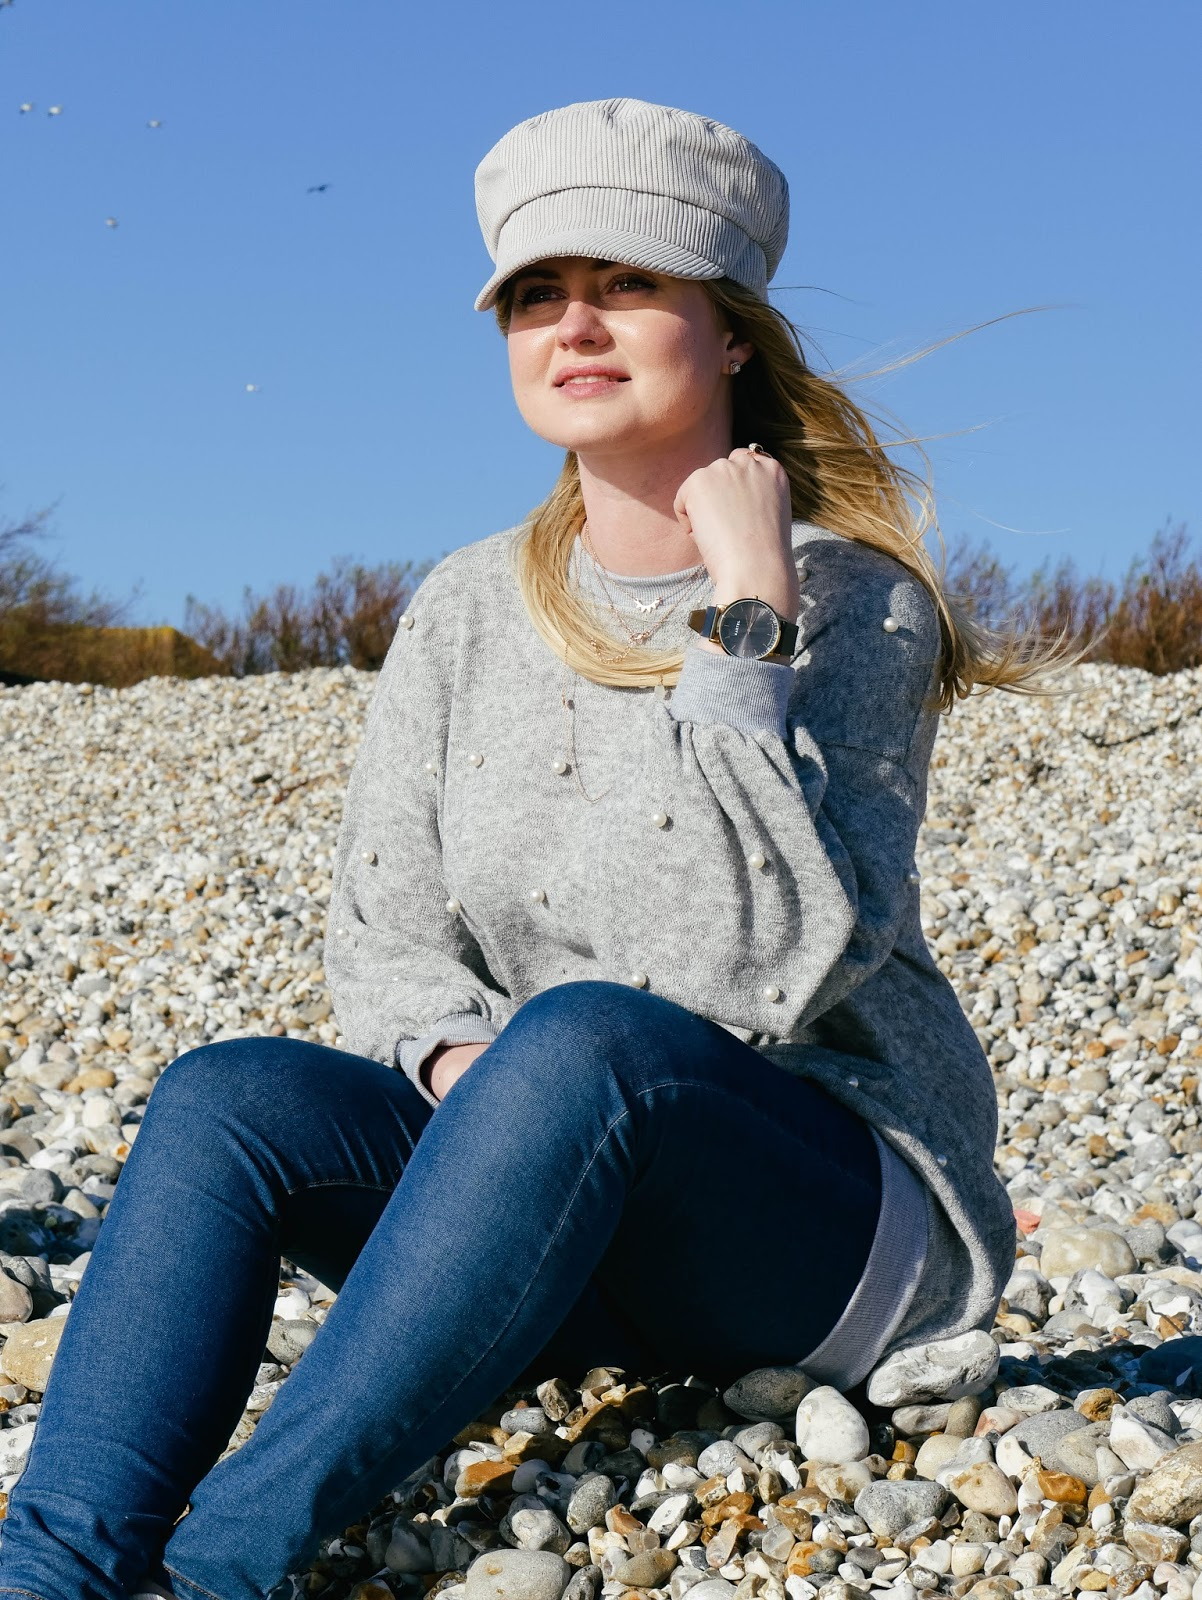 Balance by Dalry Rose Blog, fashion blog, Hampshire blog, style blog UK